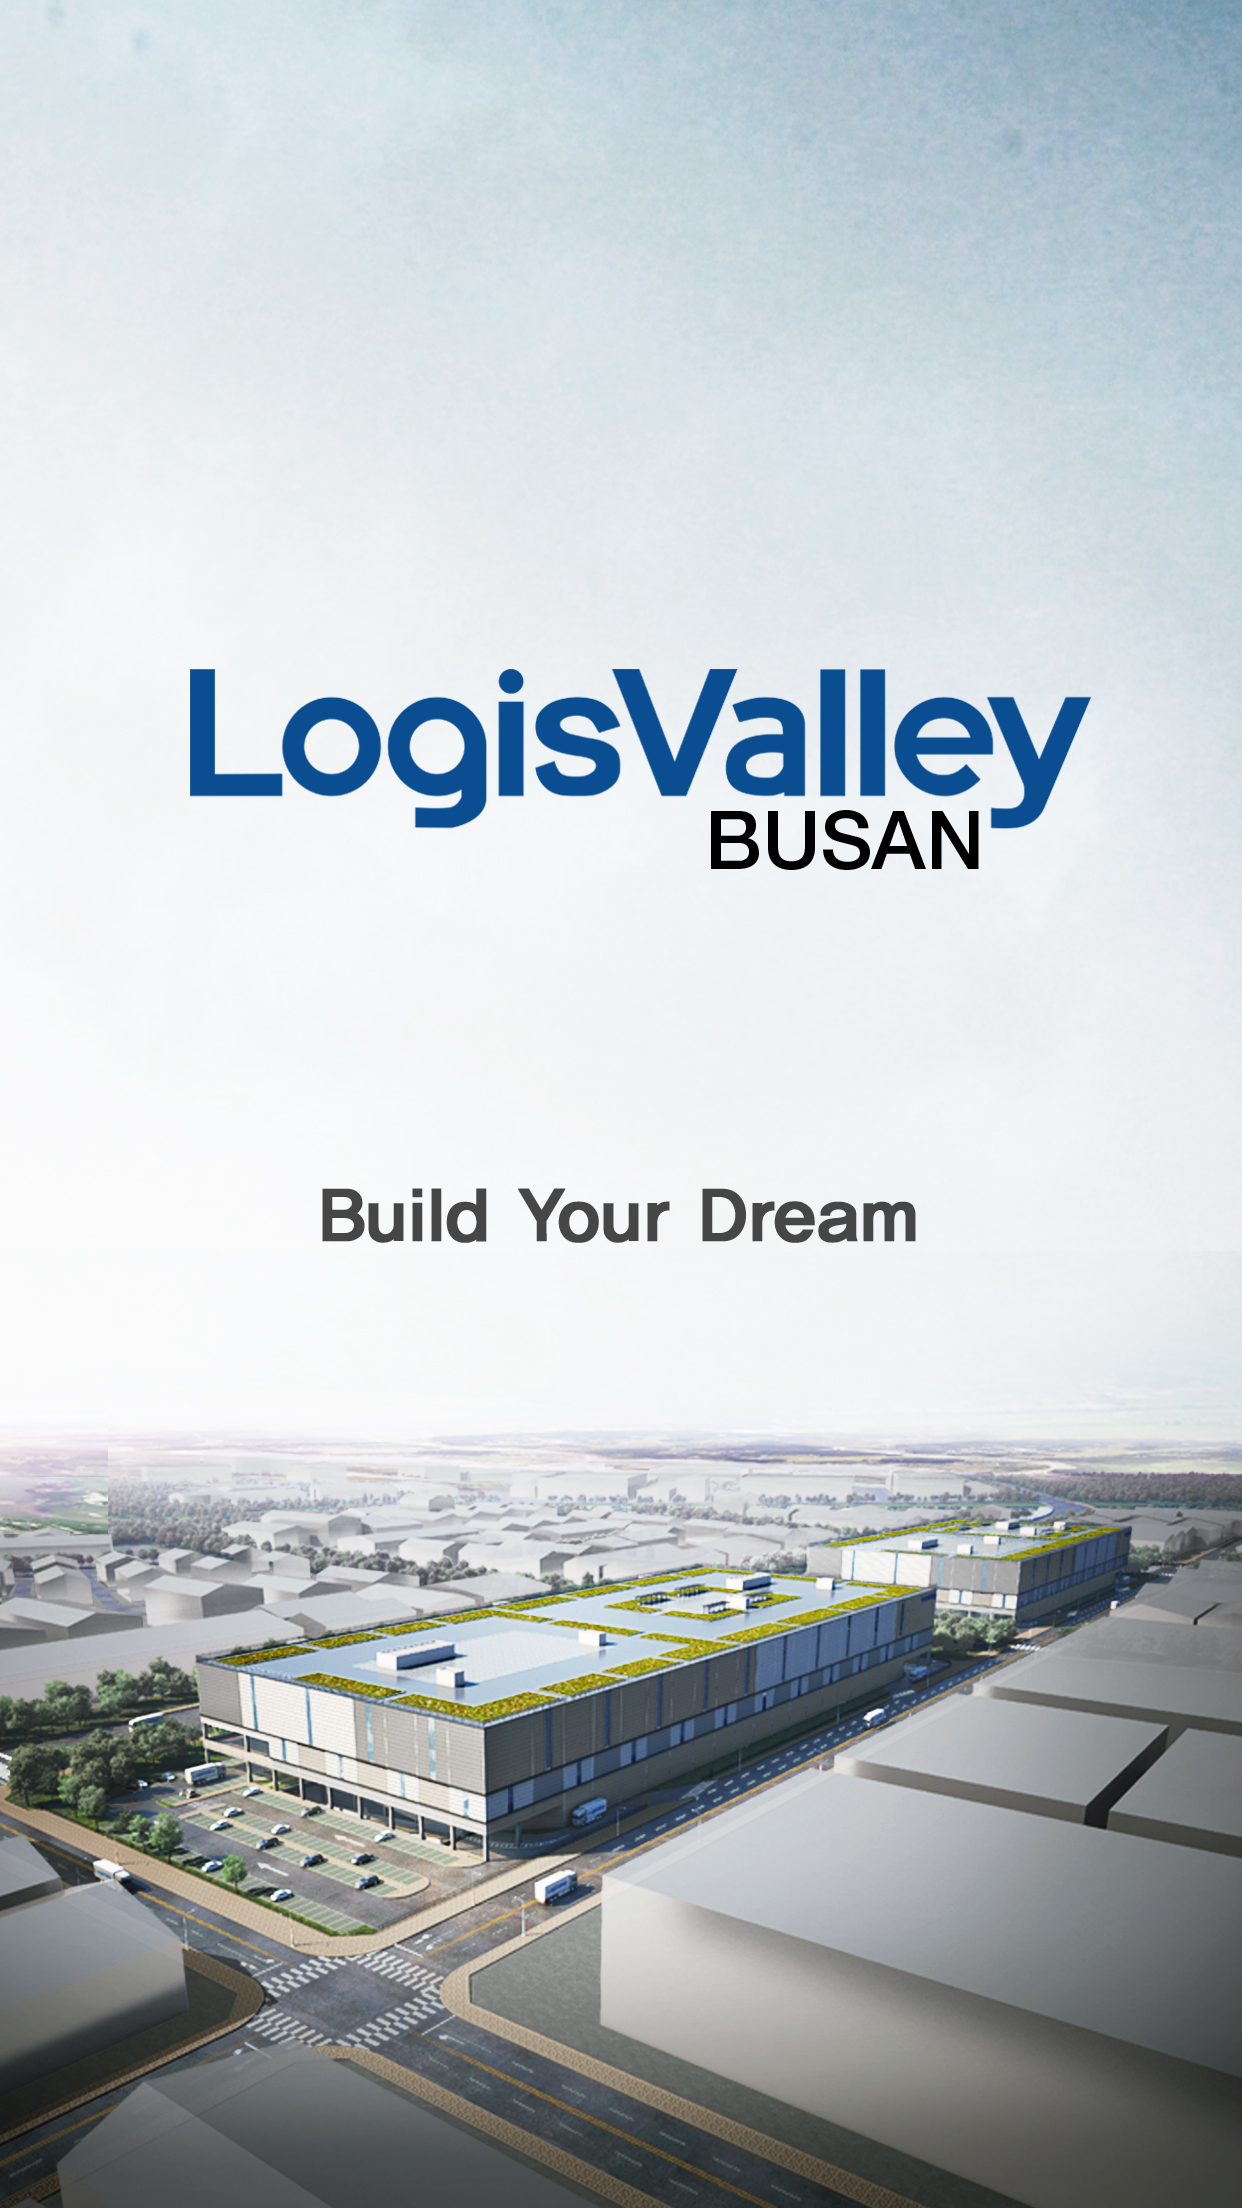 LogisValley ANSAN